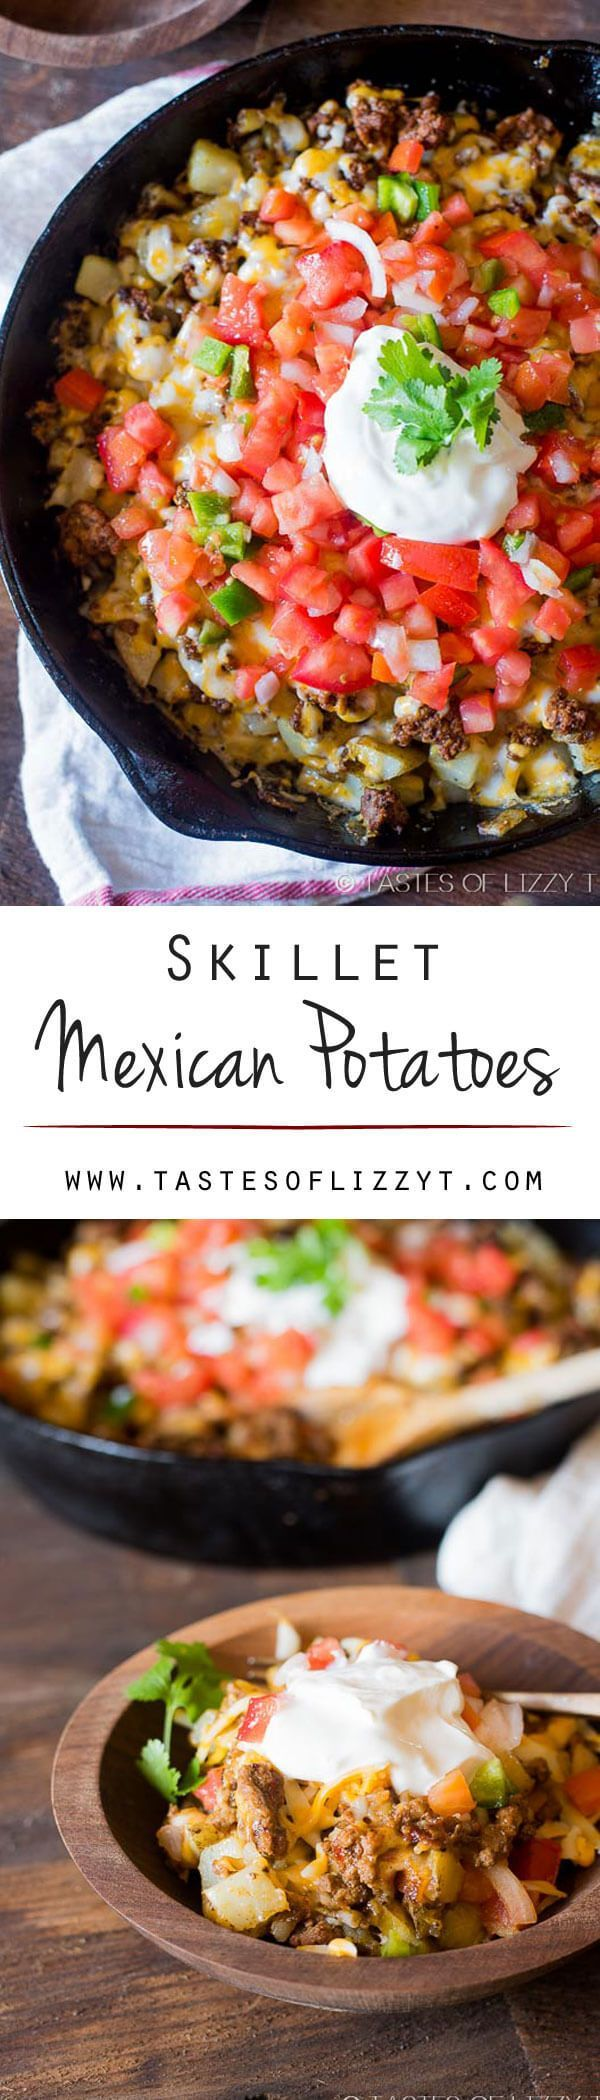 Top golden brown potatoes with your favorite taco ingredients for gluten-free skillet Mexican potatoes the family will love! Great for leftover tacos meat. Skillet Mexican Potatoes {Easy Gluten Free Dinner Recipe Idea with Beef} #potatoes #glutenfree #mex